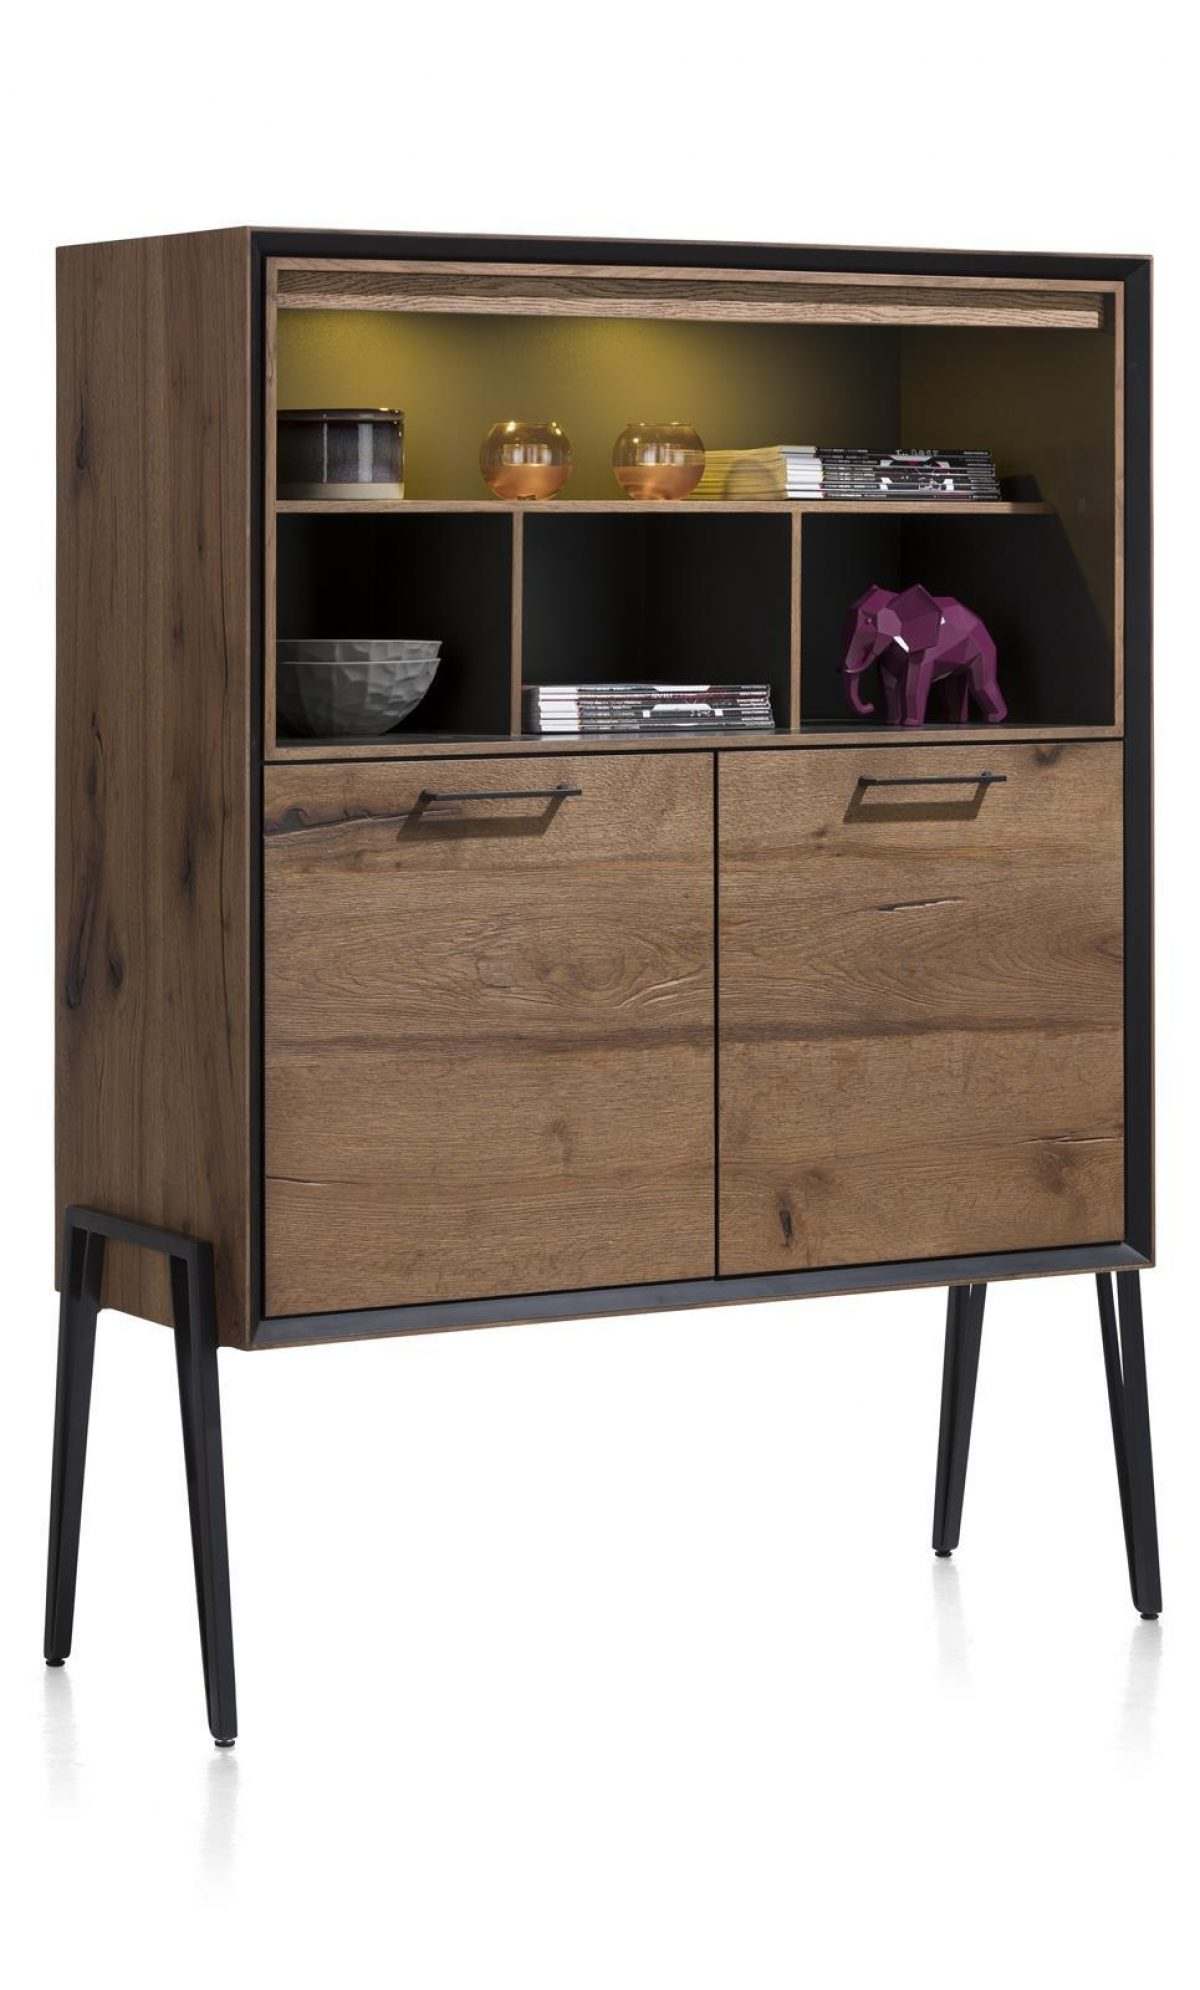 Hap 39814 janella highboard persp deco